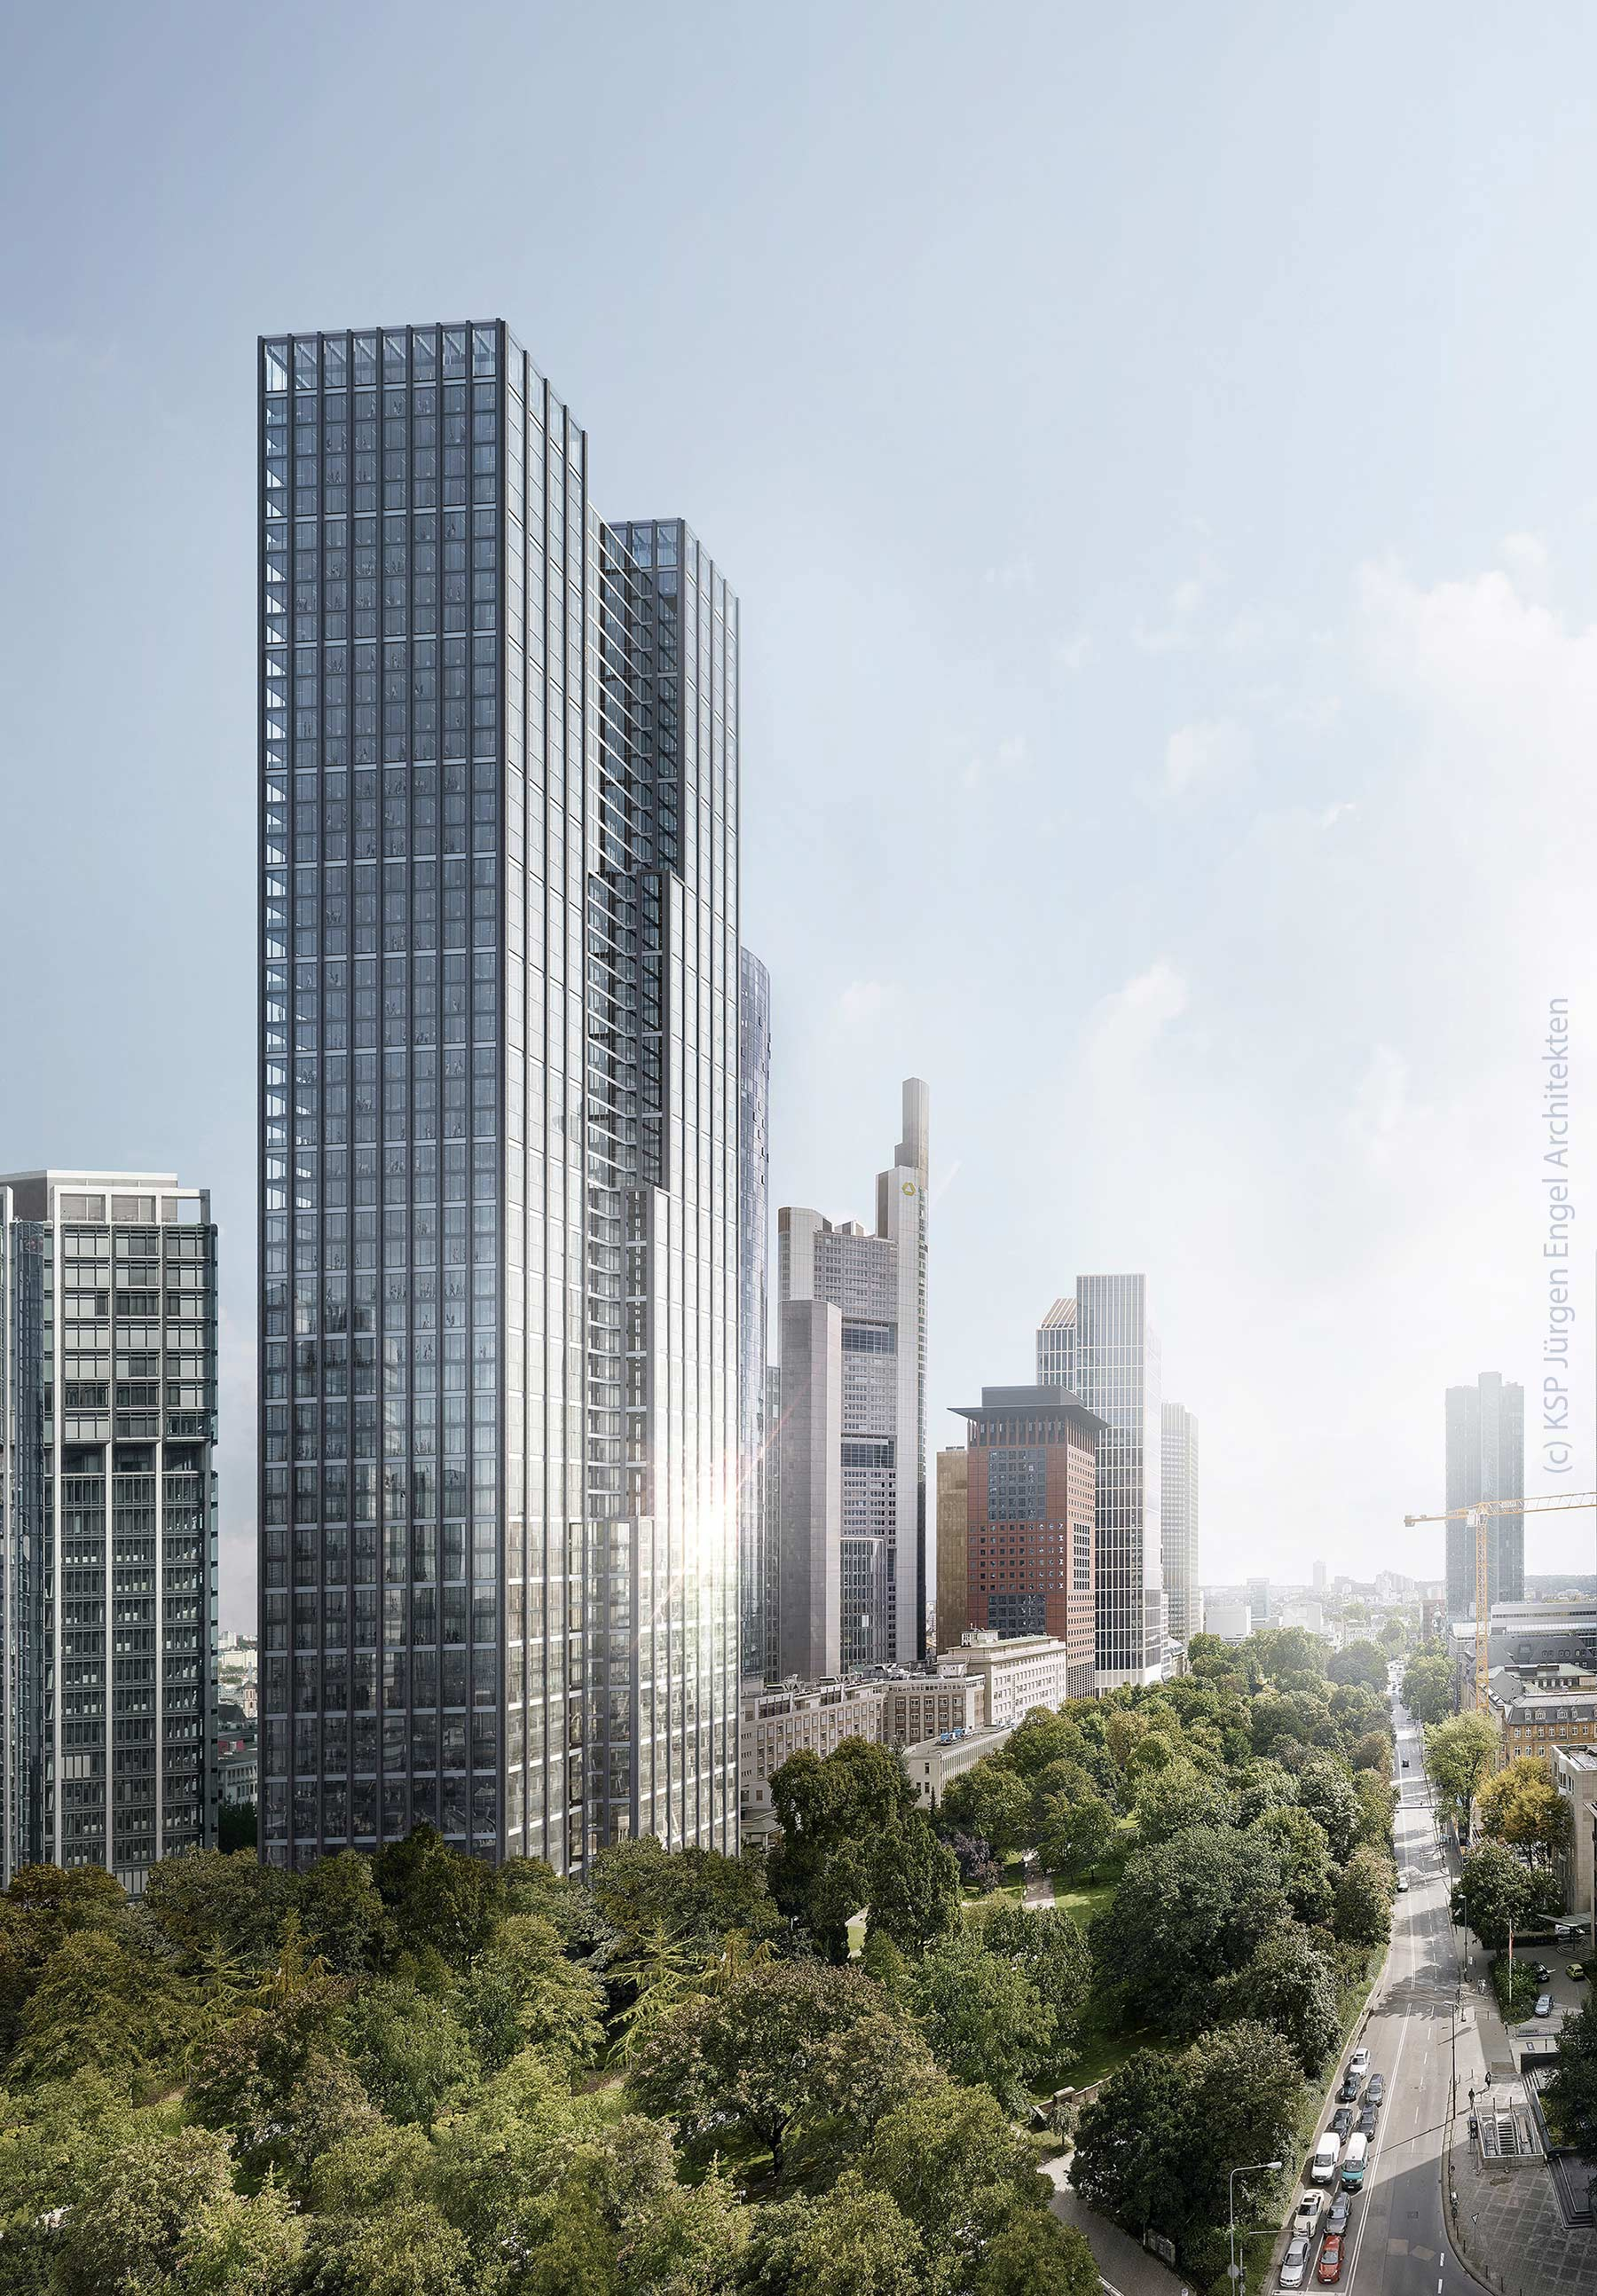 High-rise complex Neue Mainzer Strasse in Frankfurt Germany - Helaba skyscraper - KSP Jürgen Engel Architekten - Rendering as of 2019